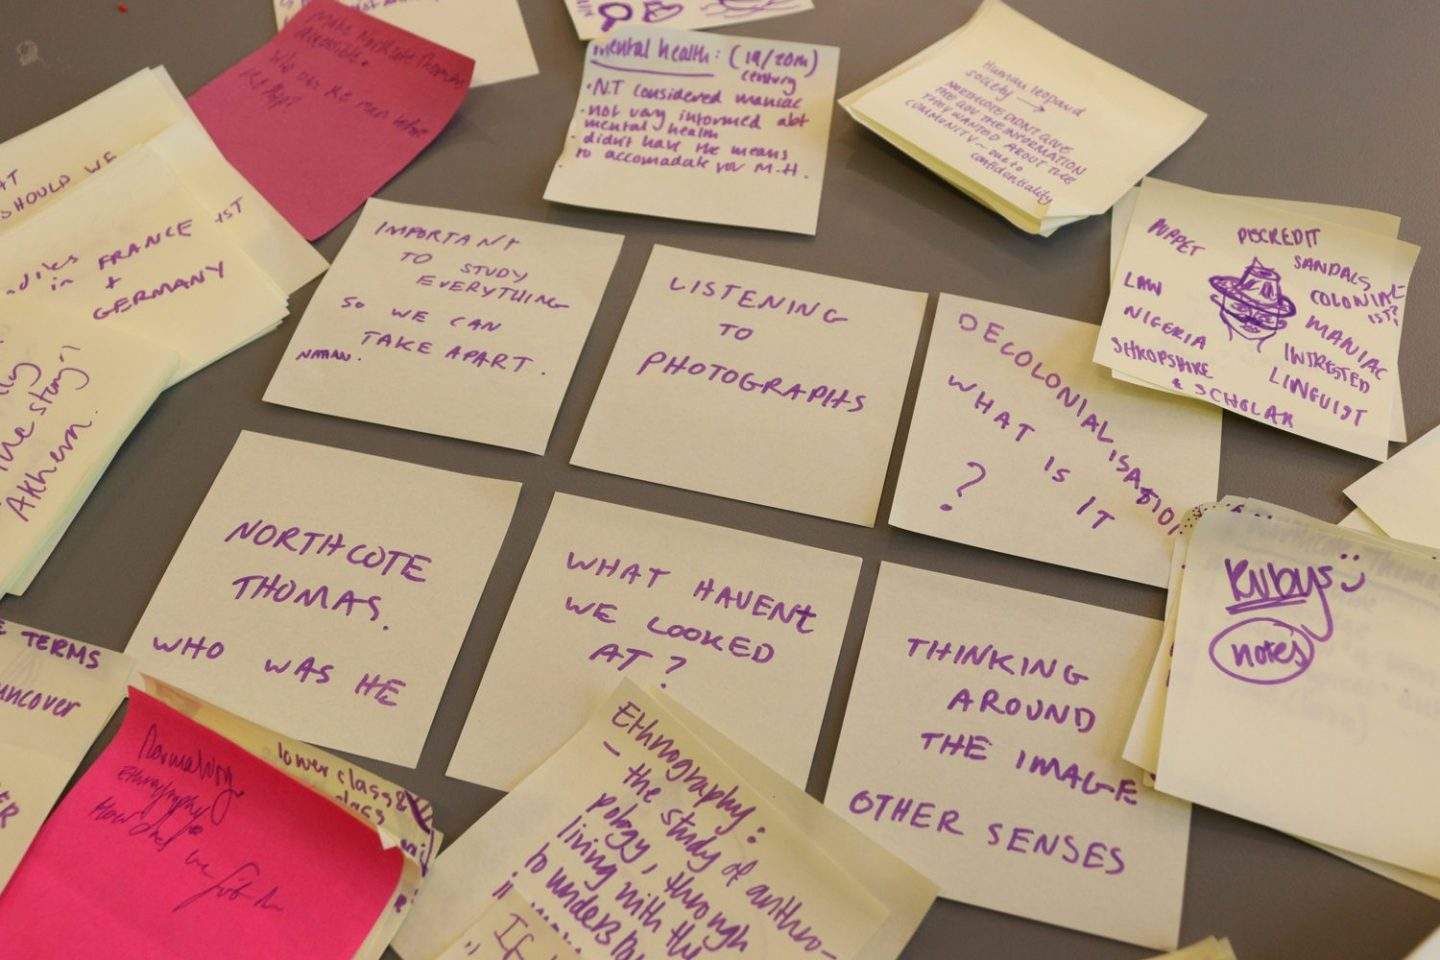 Post it notes with thoughts and observations from a session exploring the Northcote Thomas Archive